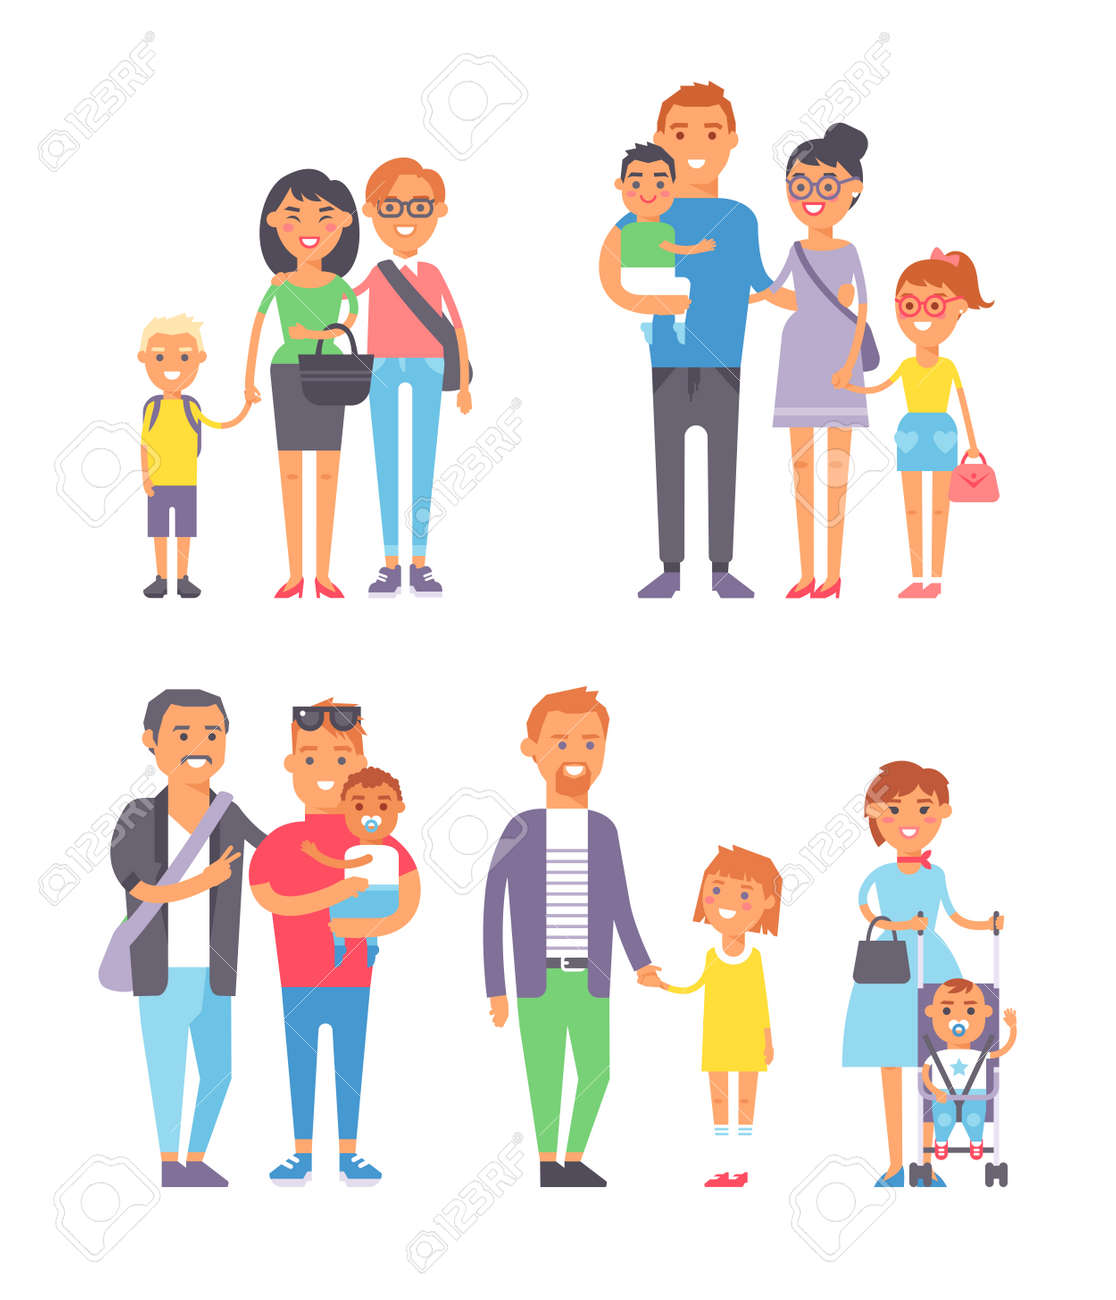 Large group of people and family people vector character set